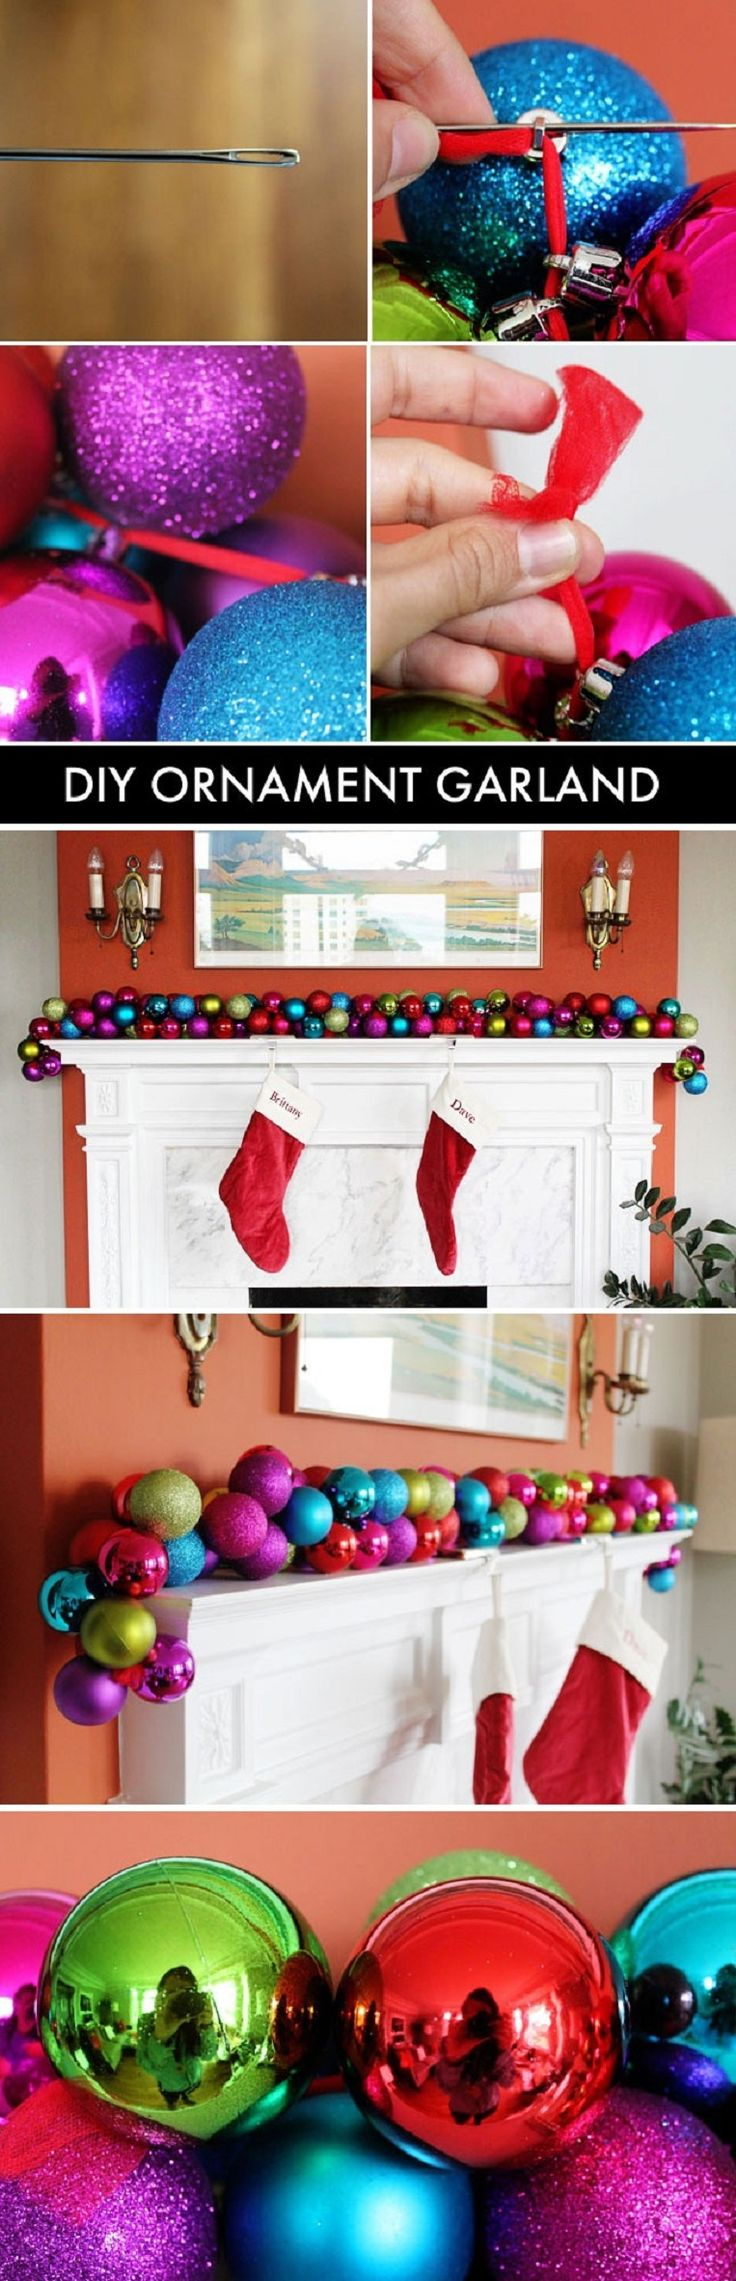 DIY Ornament Garland in 10 Minutes or Less - 20 Jaw-Dropping DIY Christmas Party Decorations | GleamItUp